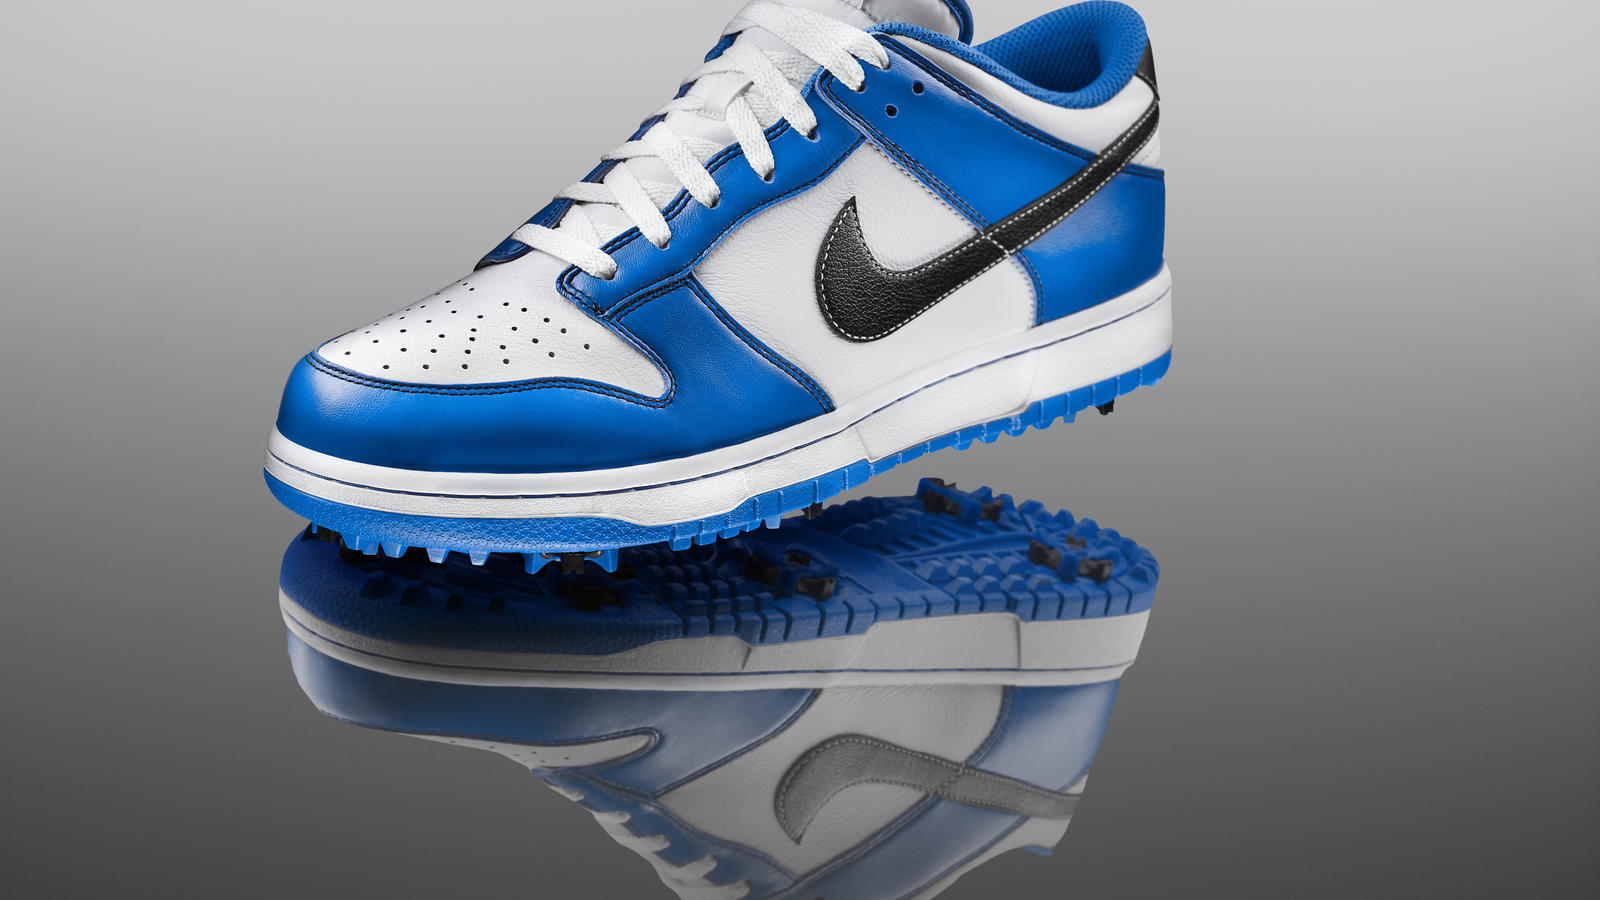 official photos 1da6d c234d Nike Golf Pays Tribute to the Iconic Nike Dunk Shoe - Nike News